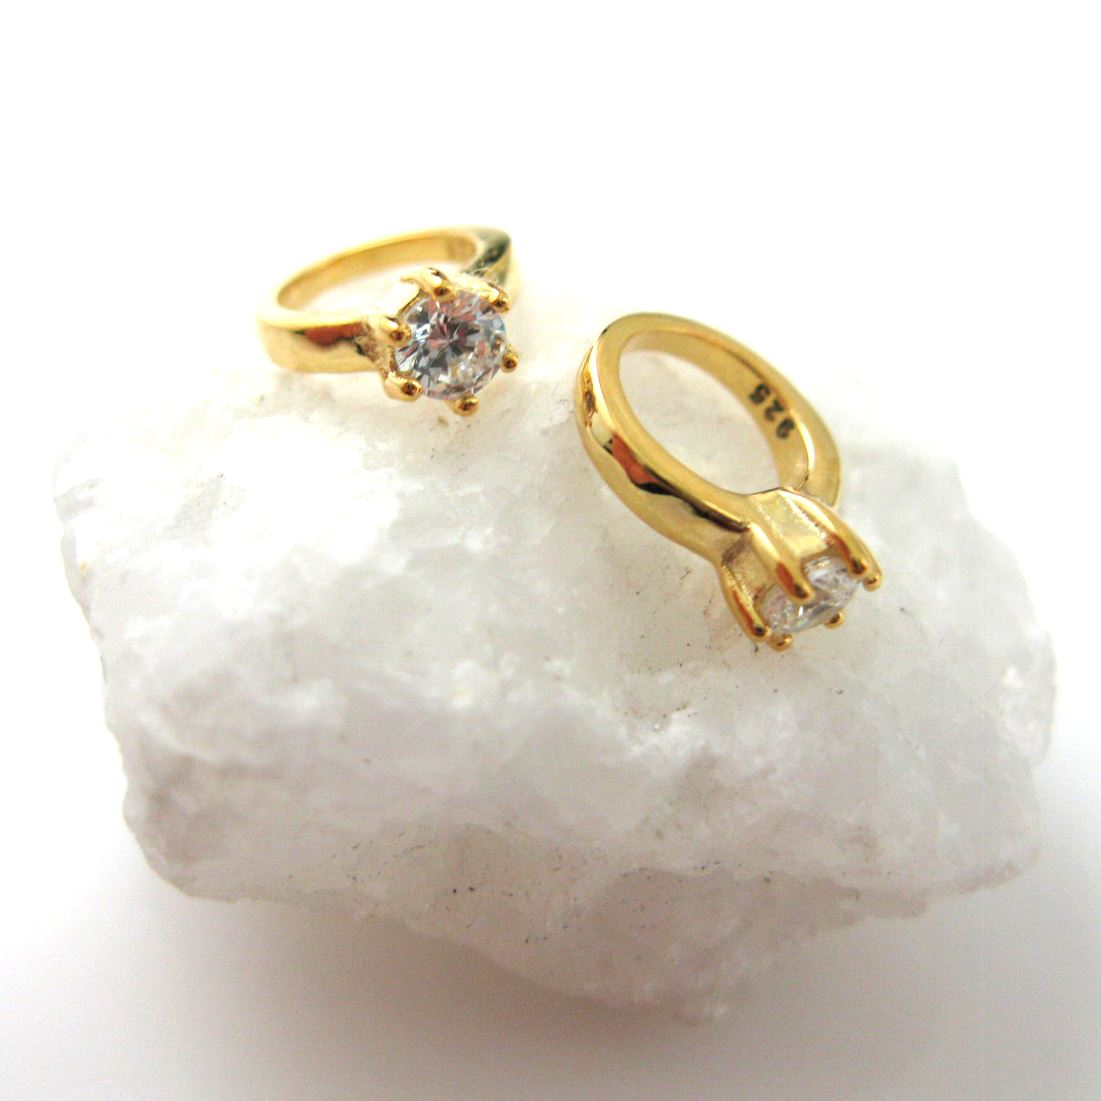 Gold plated over Sterling Silver Charms - Promise Ring Charm - Vermeil Ring (2 pcs)